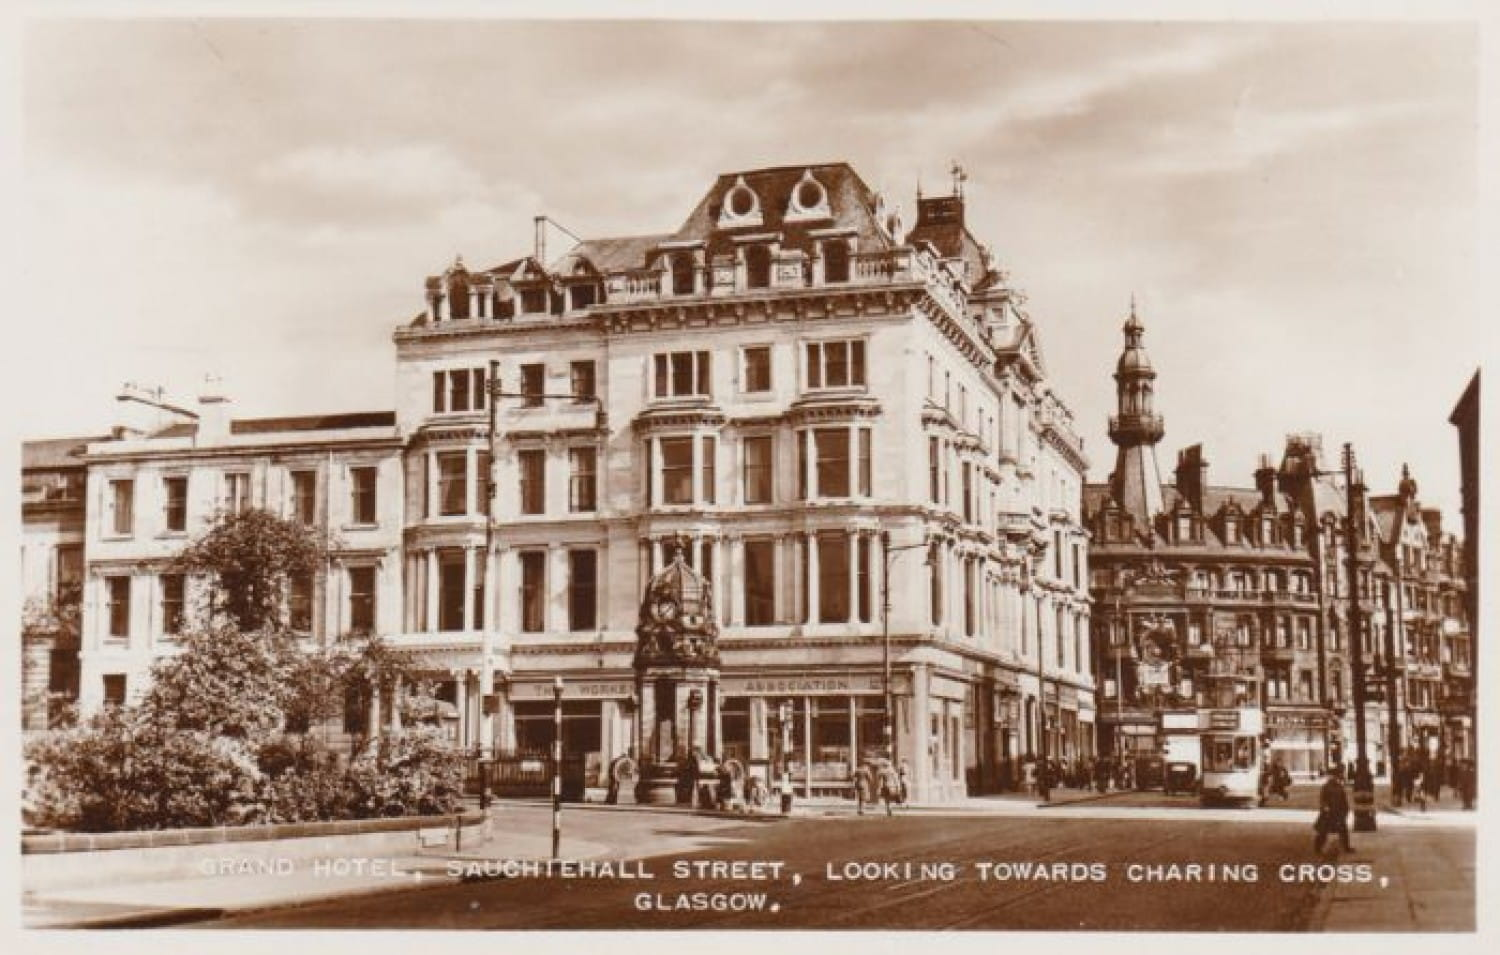 A postcard view of the Grand